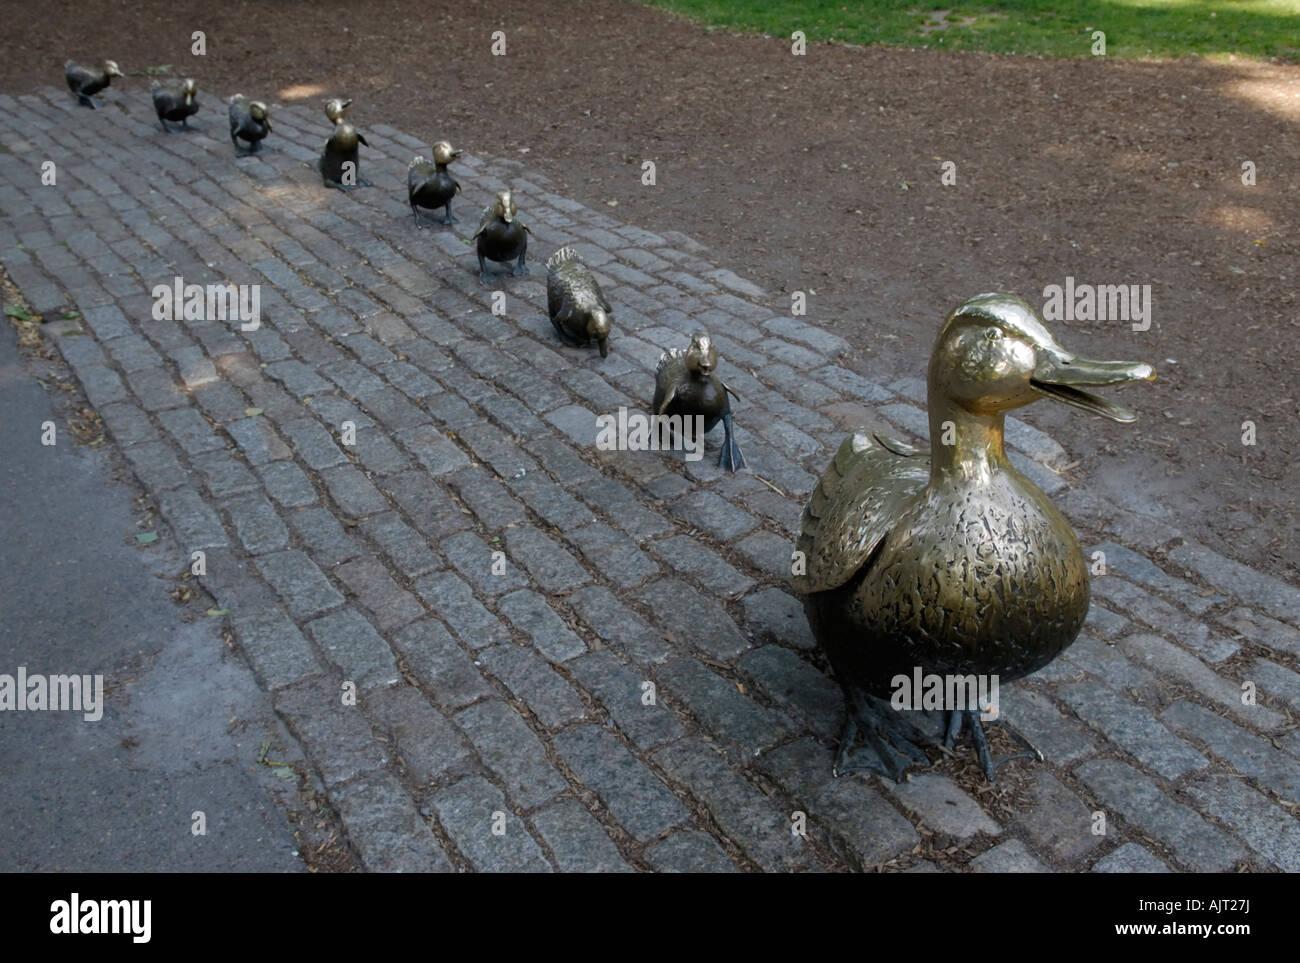 Statues of mother duck and her ducklings from th children's book, 'Make Way for Ducklings', in the Boston - Stock Image